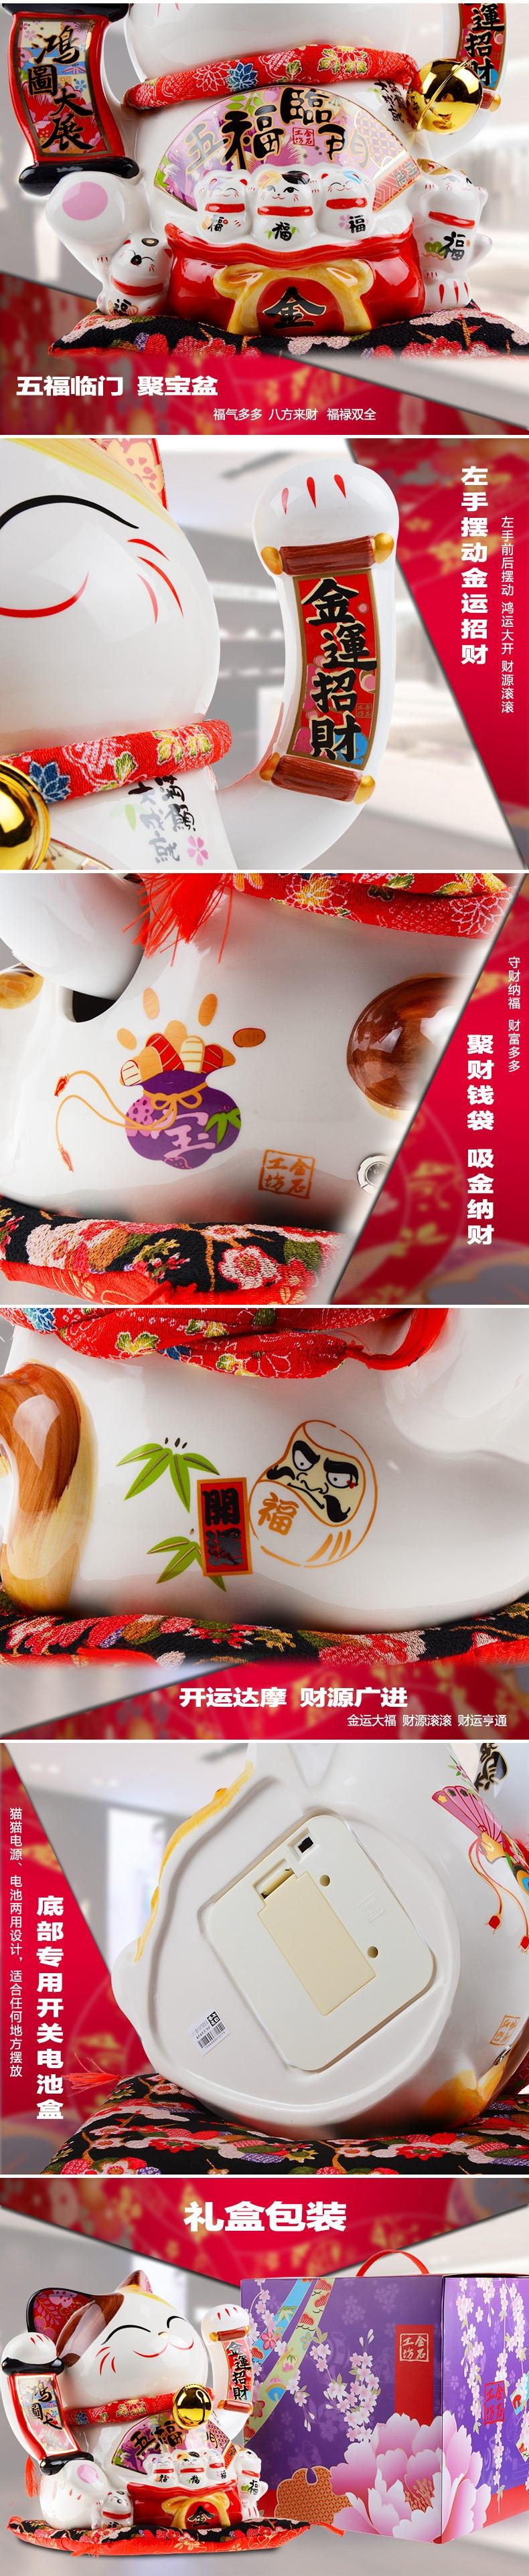 LUCKY FORTUNE CAT 11˝ 鸿图大展 HAND WAVING